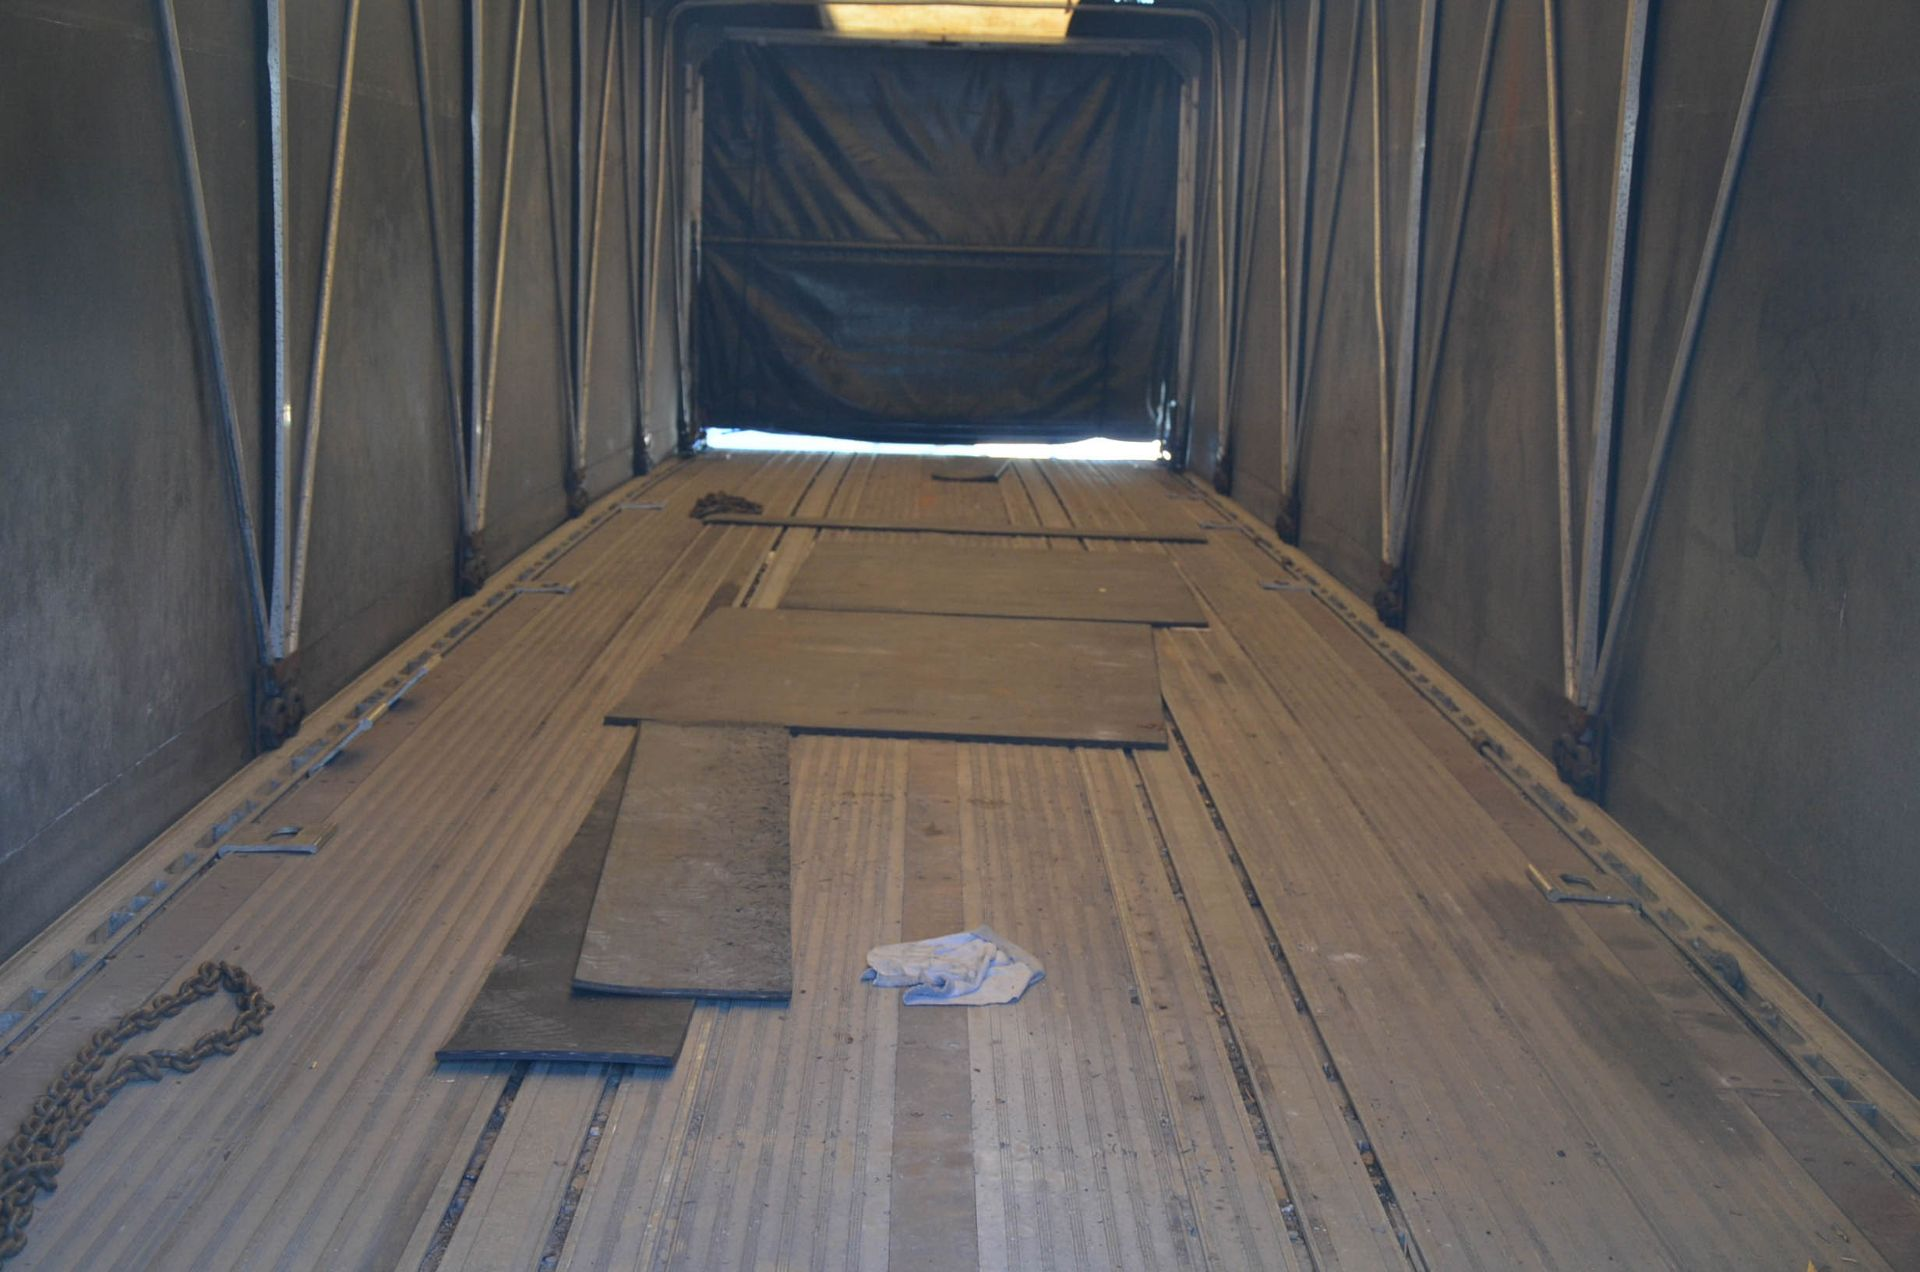 REITNOUER (1999) TANDEM AXLE ALUMINUM FLAT-DECK TRAILER, ROLL TITE QUICK DRAW TARP SYSTEM, VIN: - Image 12 of 12